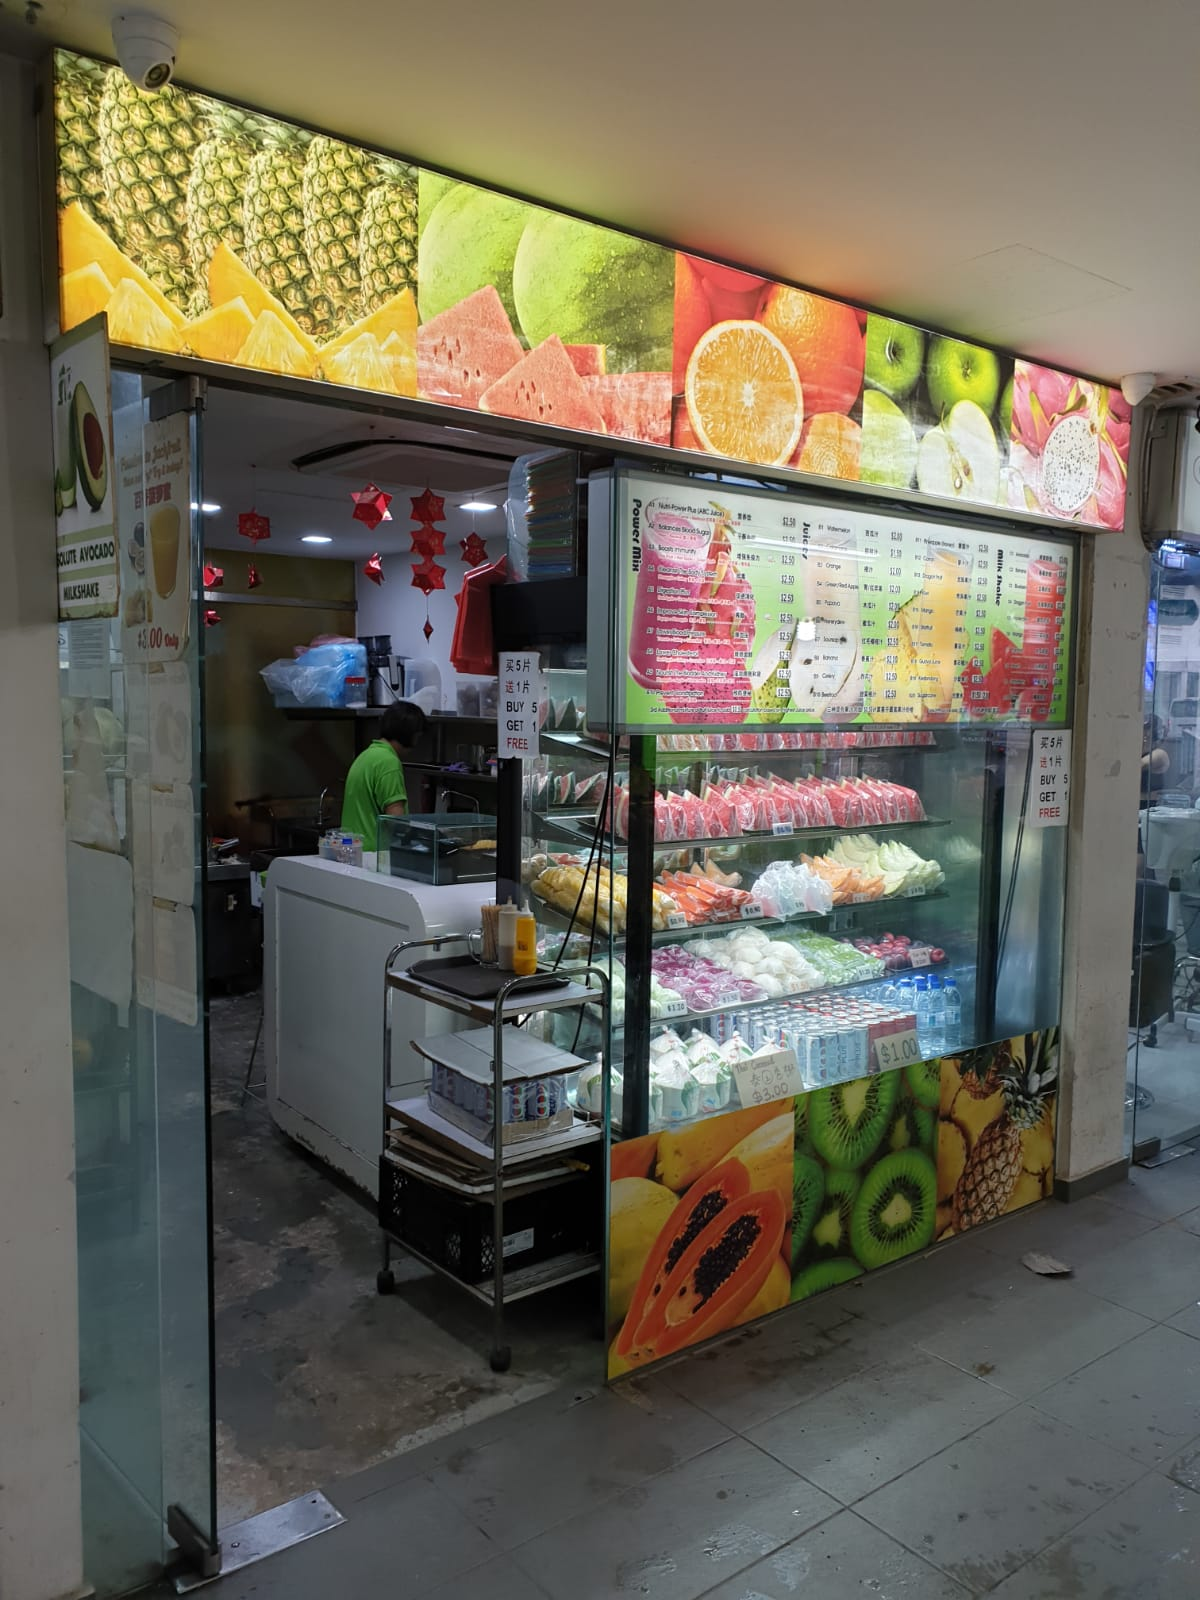 Fruits and juices shop for takeover | 商业出售 | Look For Buyer - Business for Sale or Buy a Ready Business